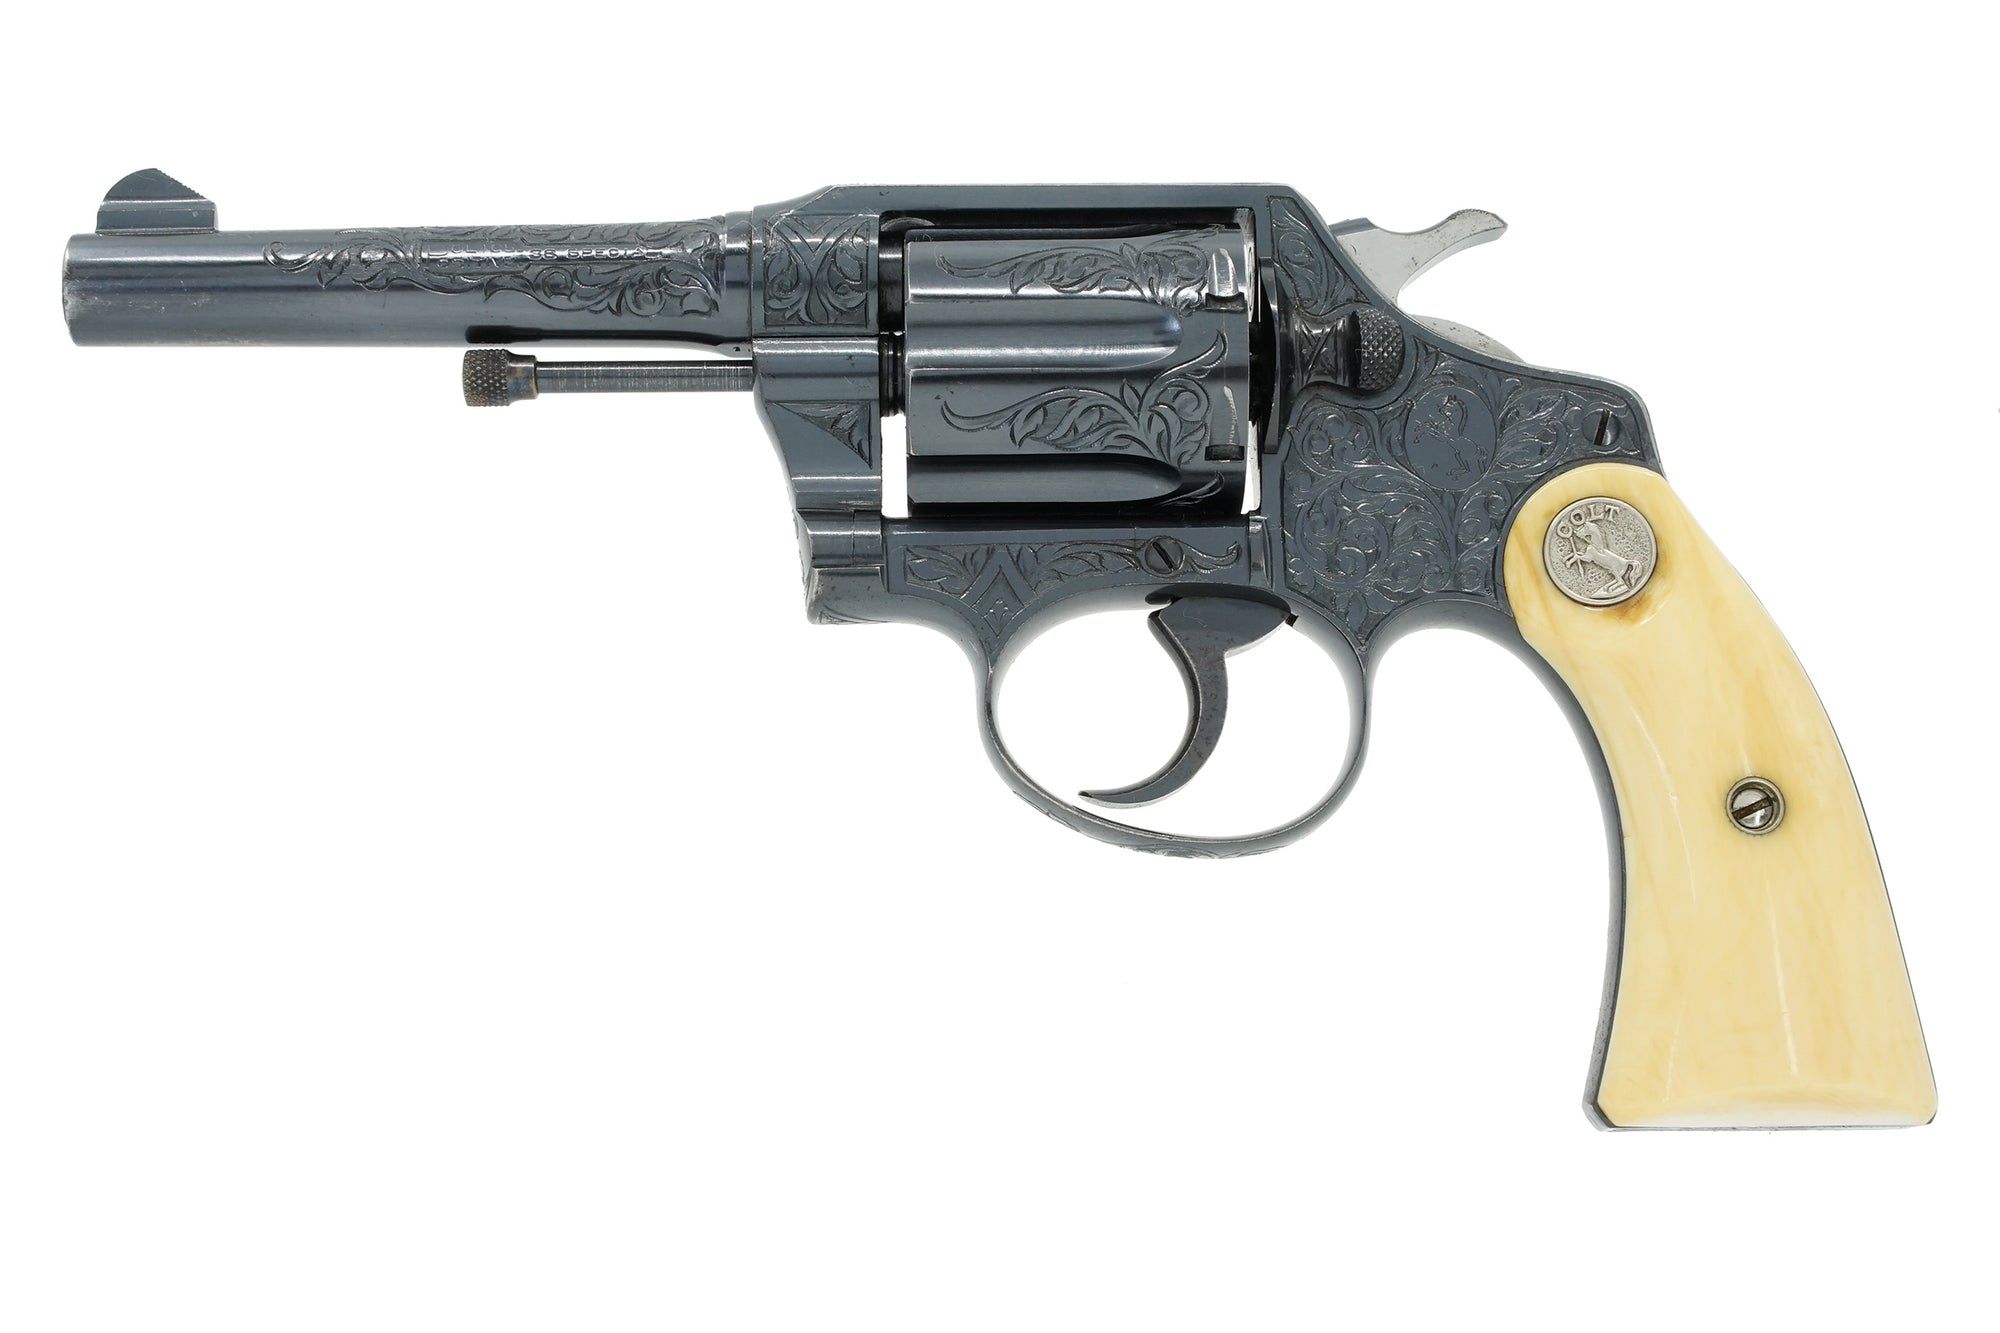 "Colt Police Positive 38 4"" SN:303182 MFG:1924 - Factory Engraved"